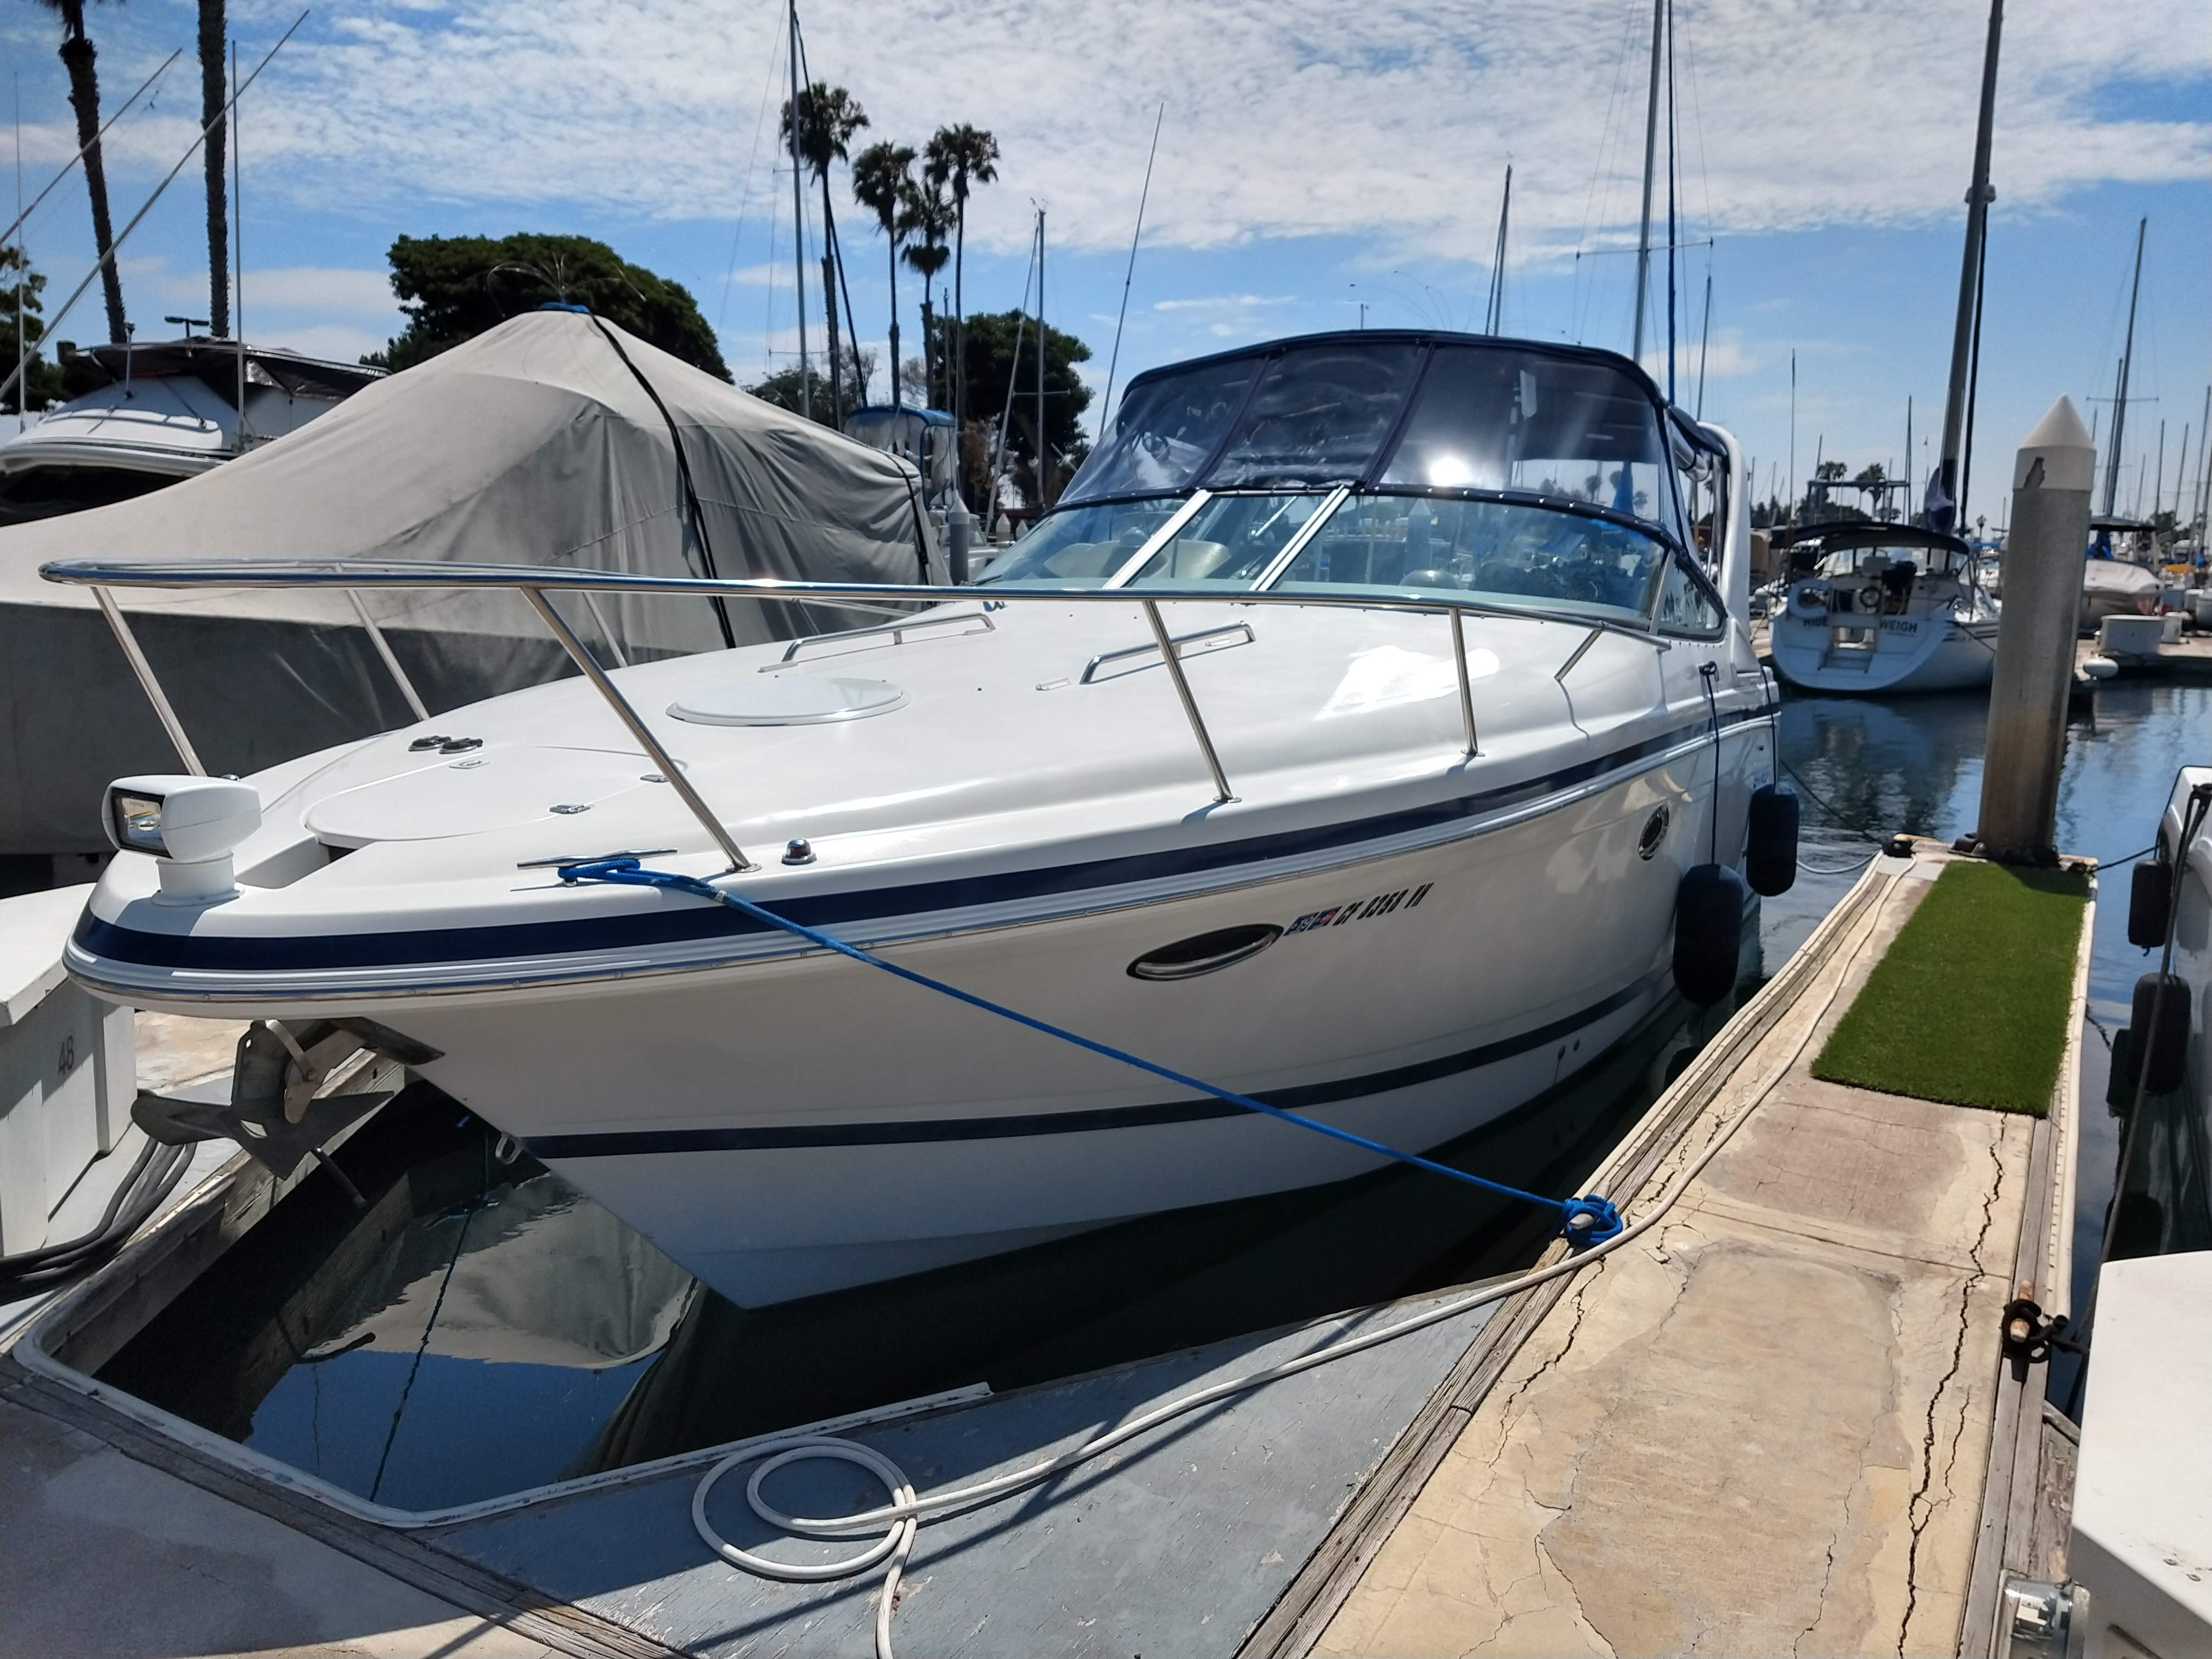 Chris-craft boats for sale in California - Boat Trader